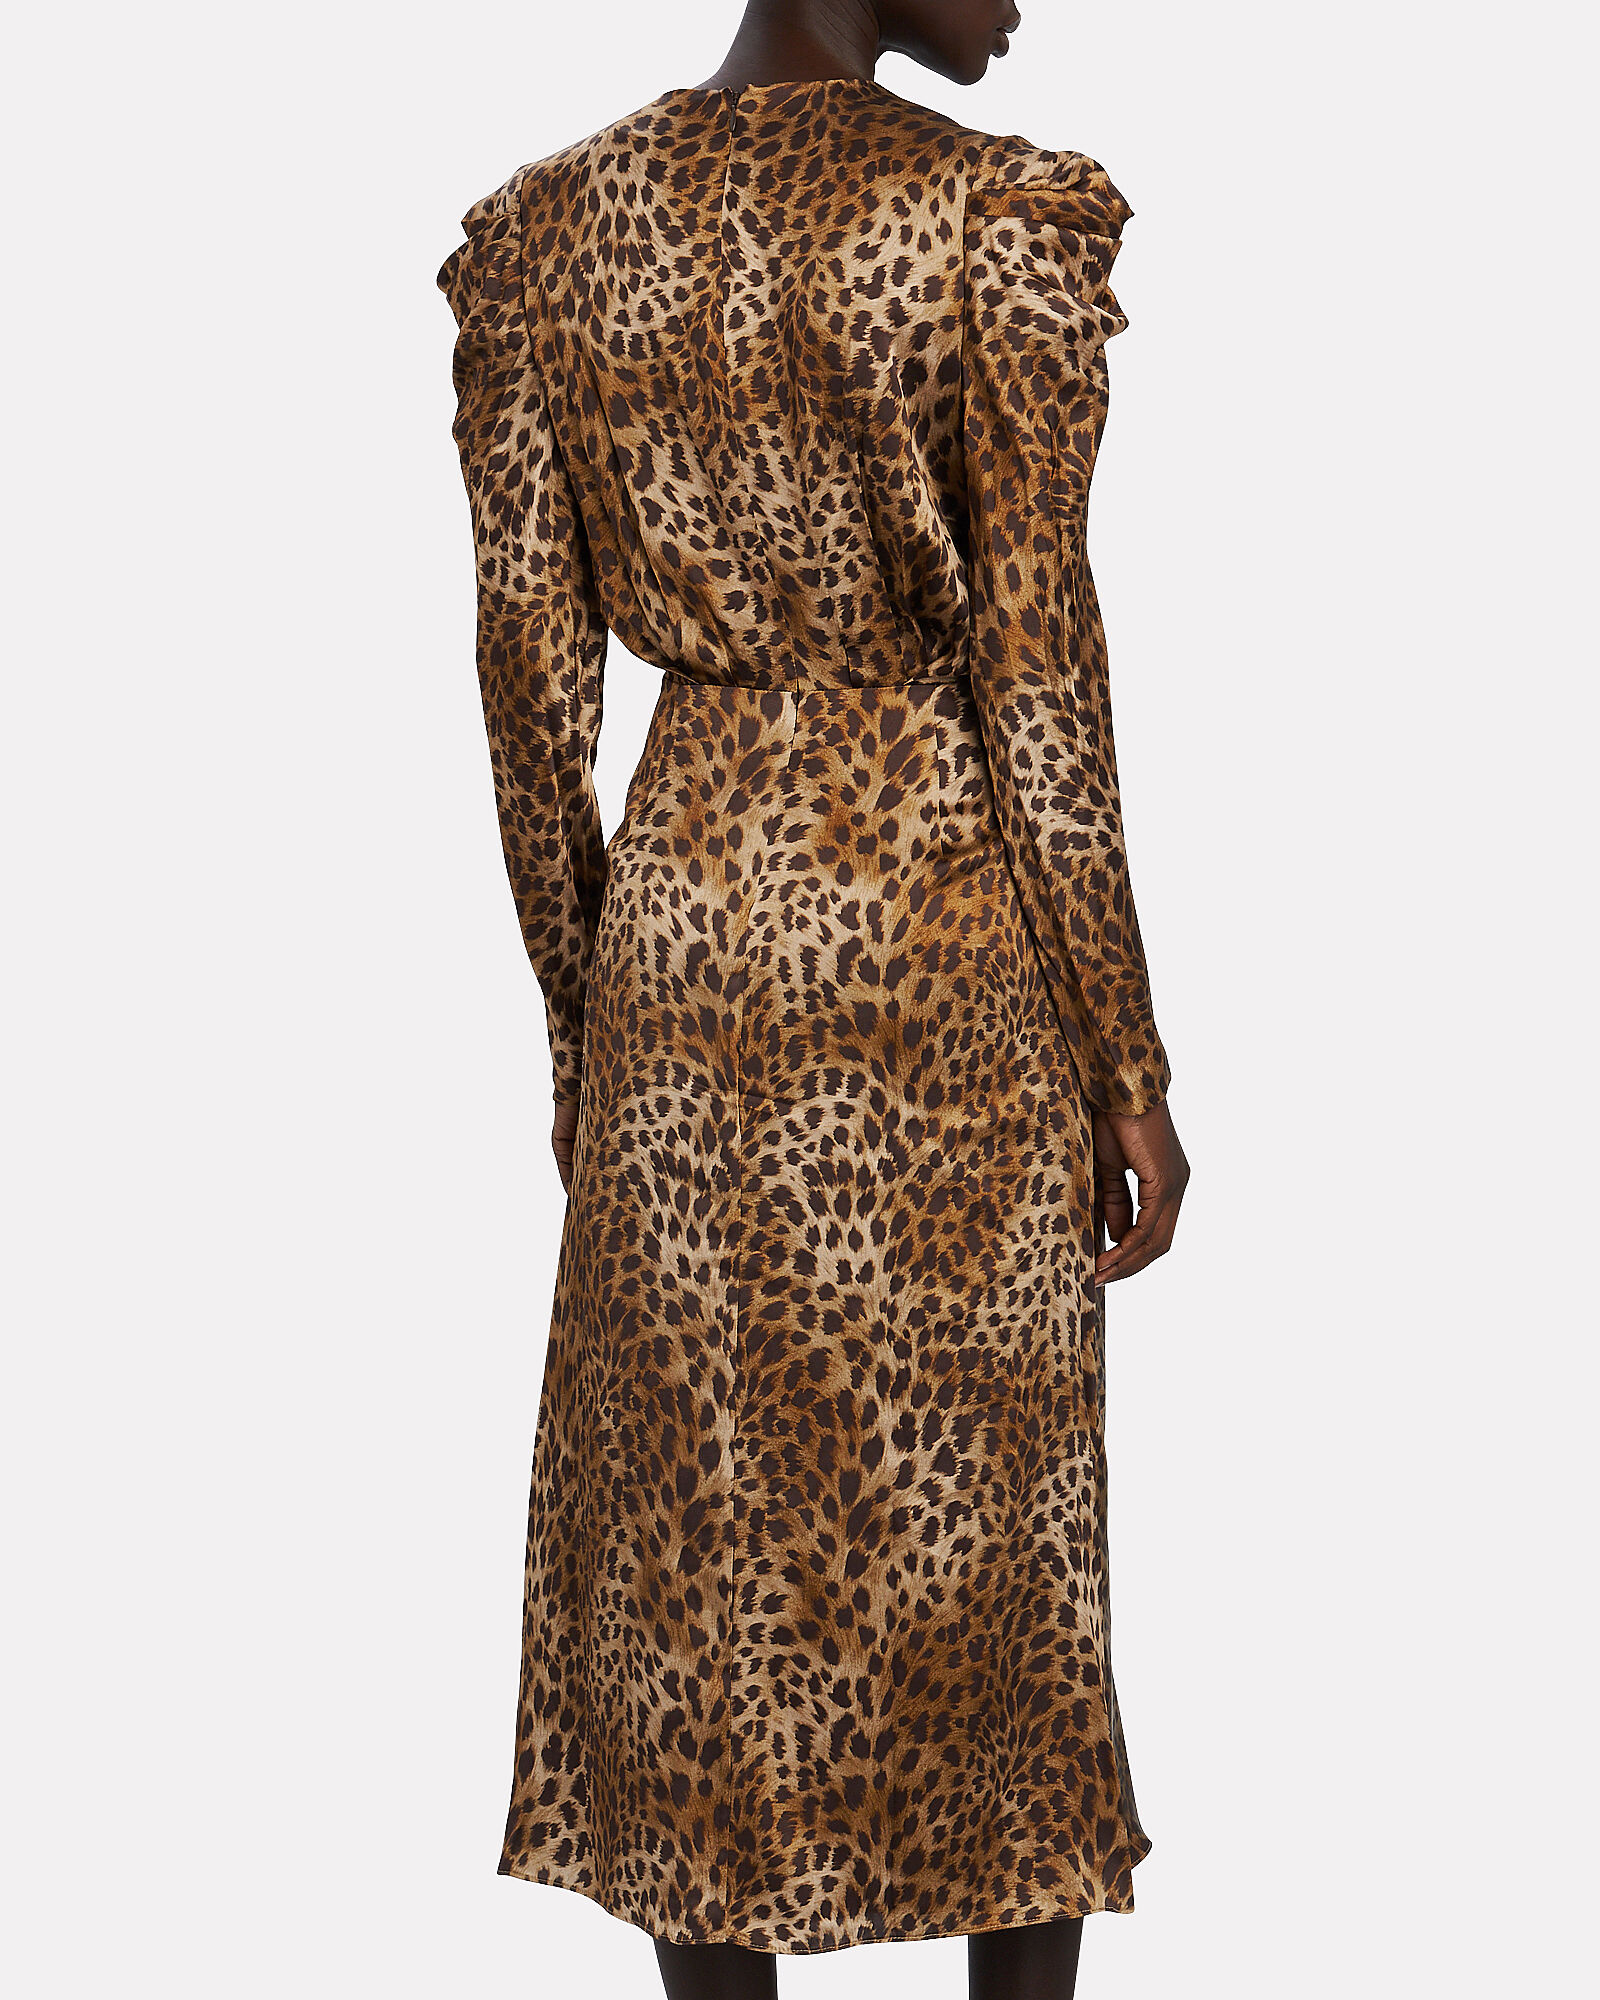 Maisie Leopard Print Midi Dress, BEIGE/BLACK, hi-res